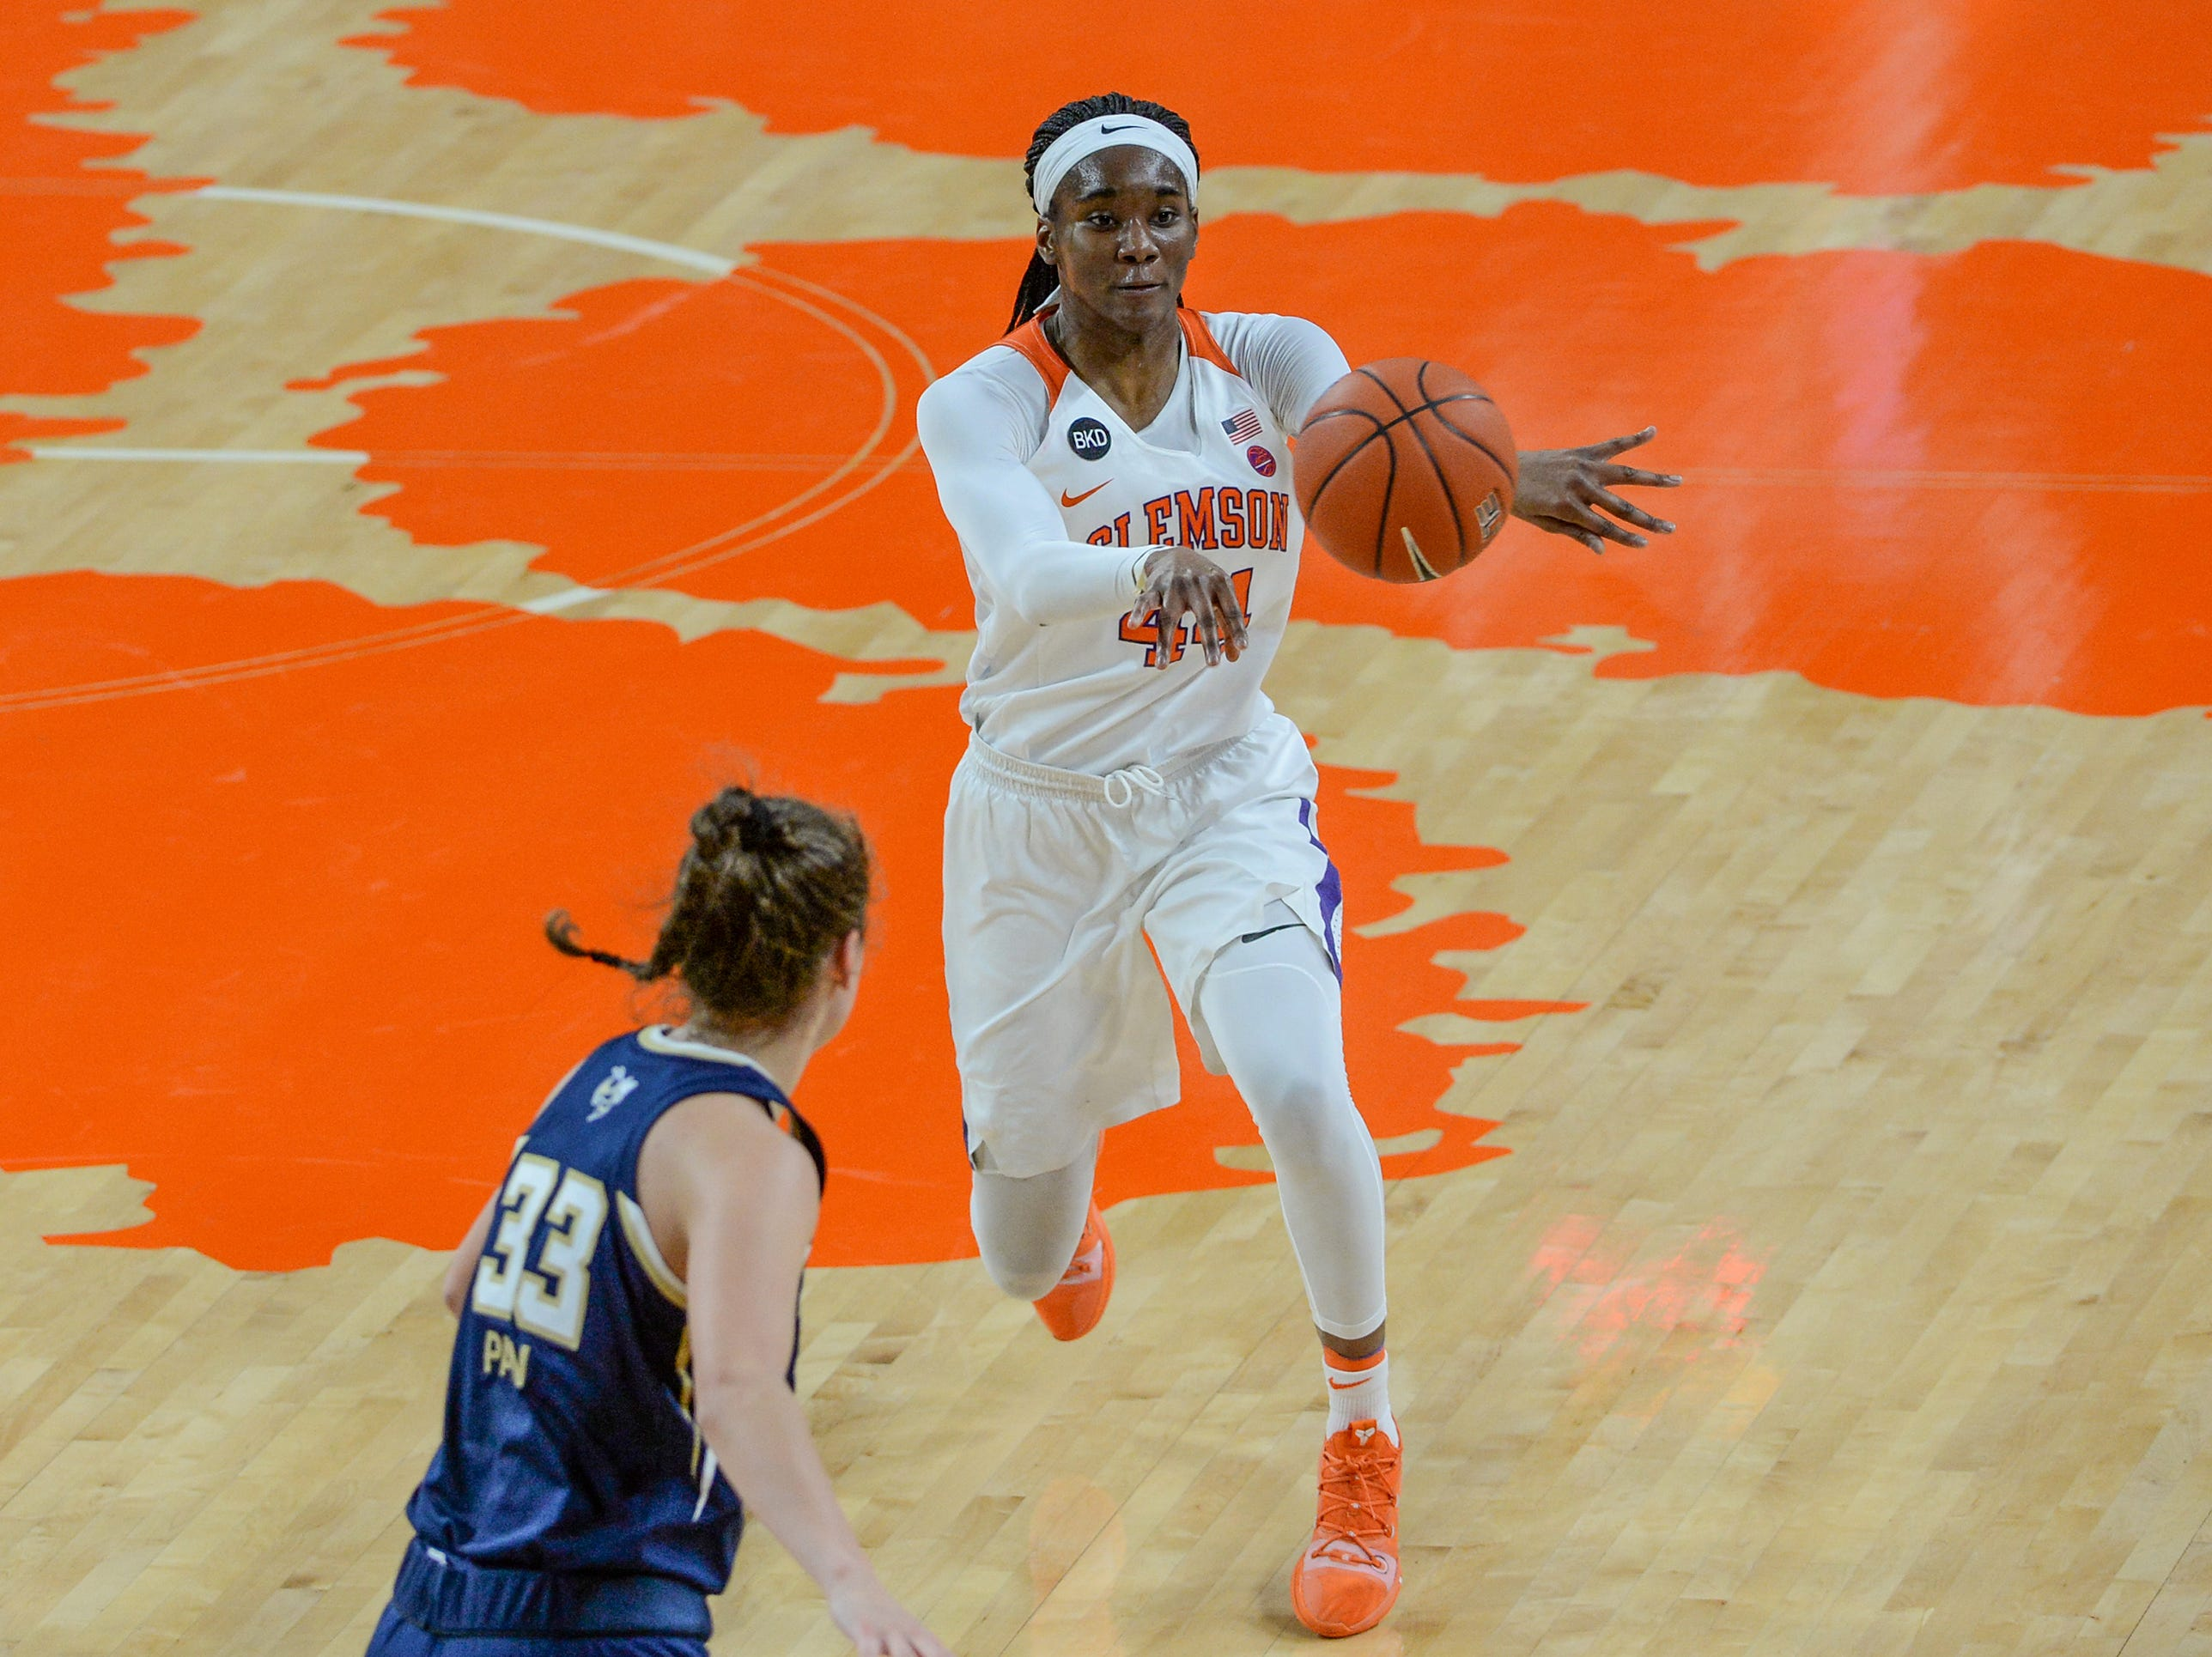 Clemson center Kobi Thornton(44) dribbles up court during the second quarter of the game with Georgia Tech at Littlejohn Coliseum in Clemson Thursday, January 17, 2019.